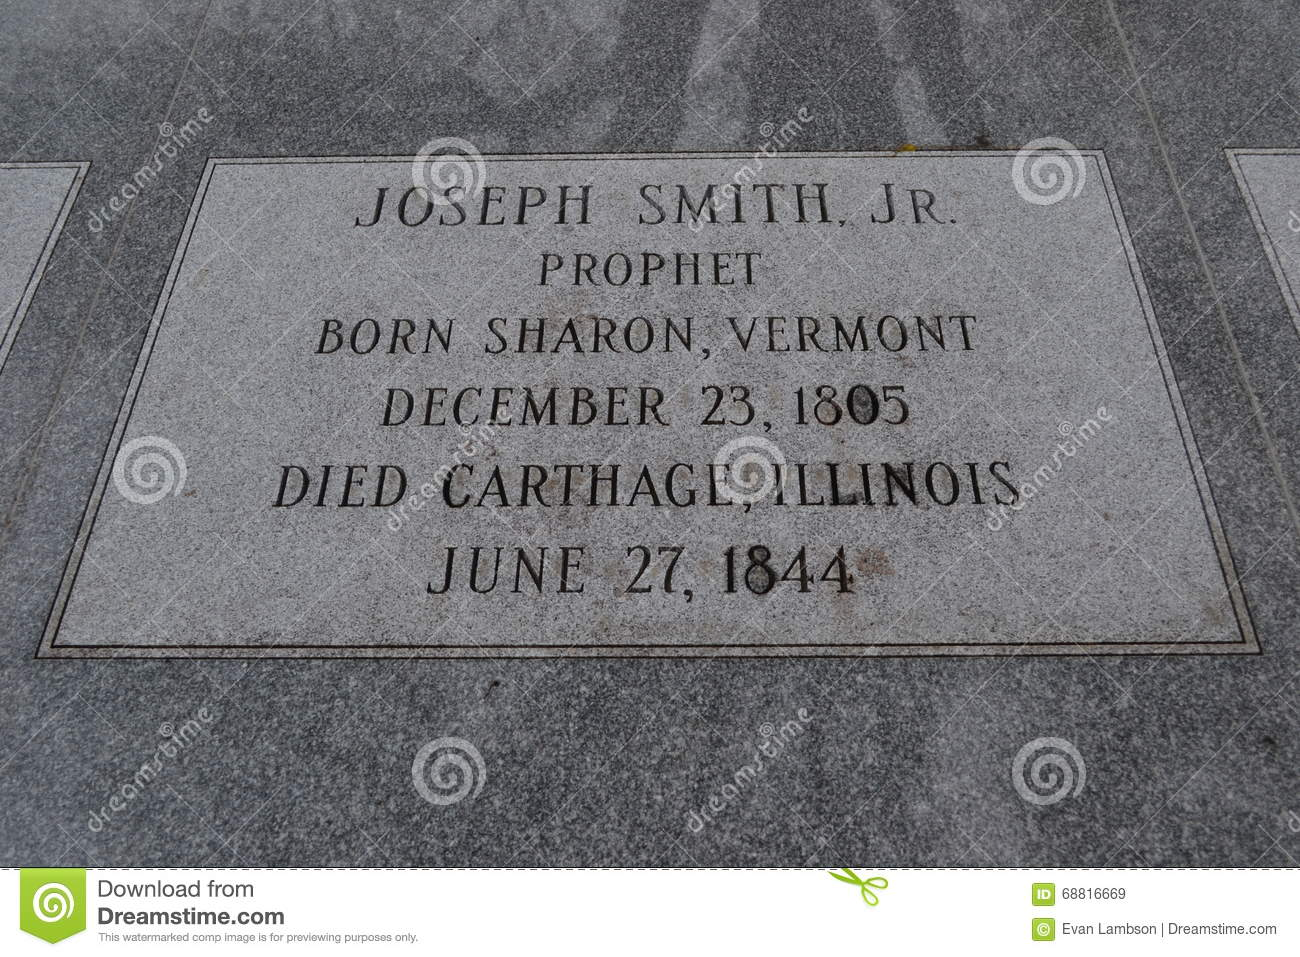 Headstone of Joseph Smith jr. Hyrum Smith and Emma Smith